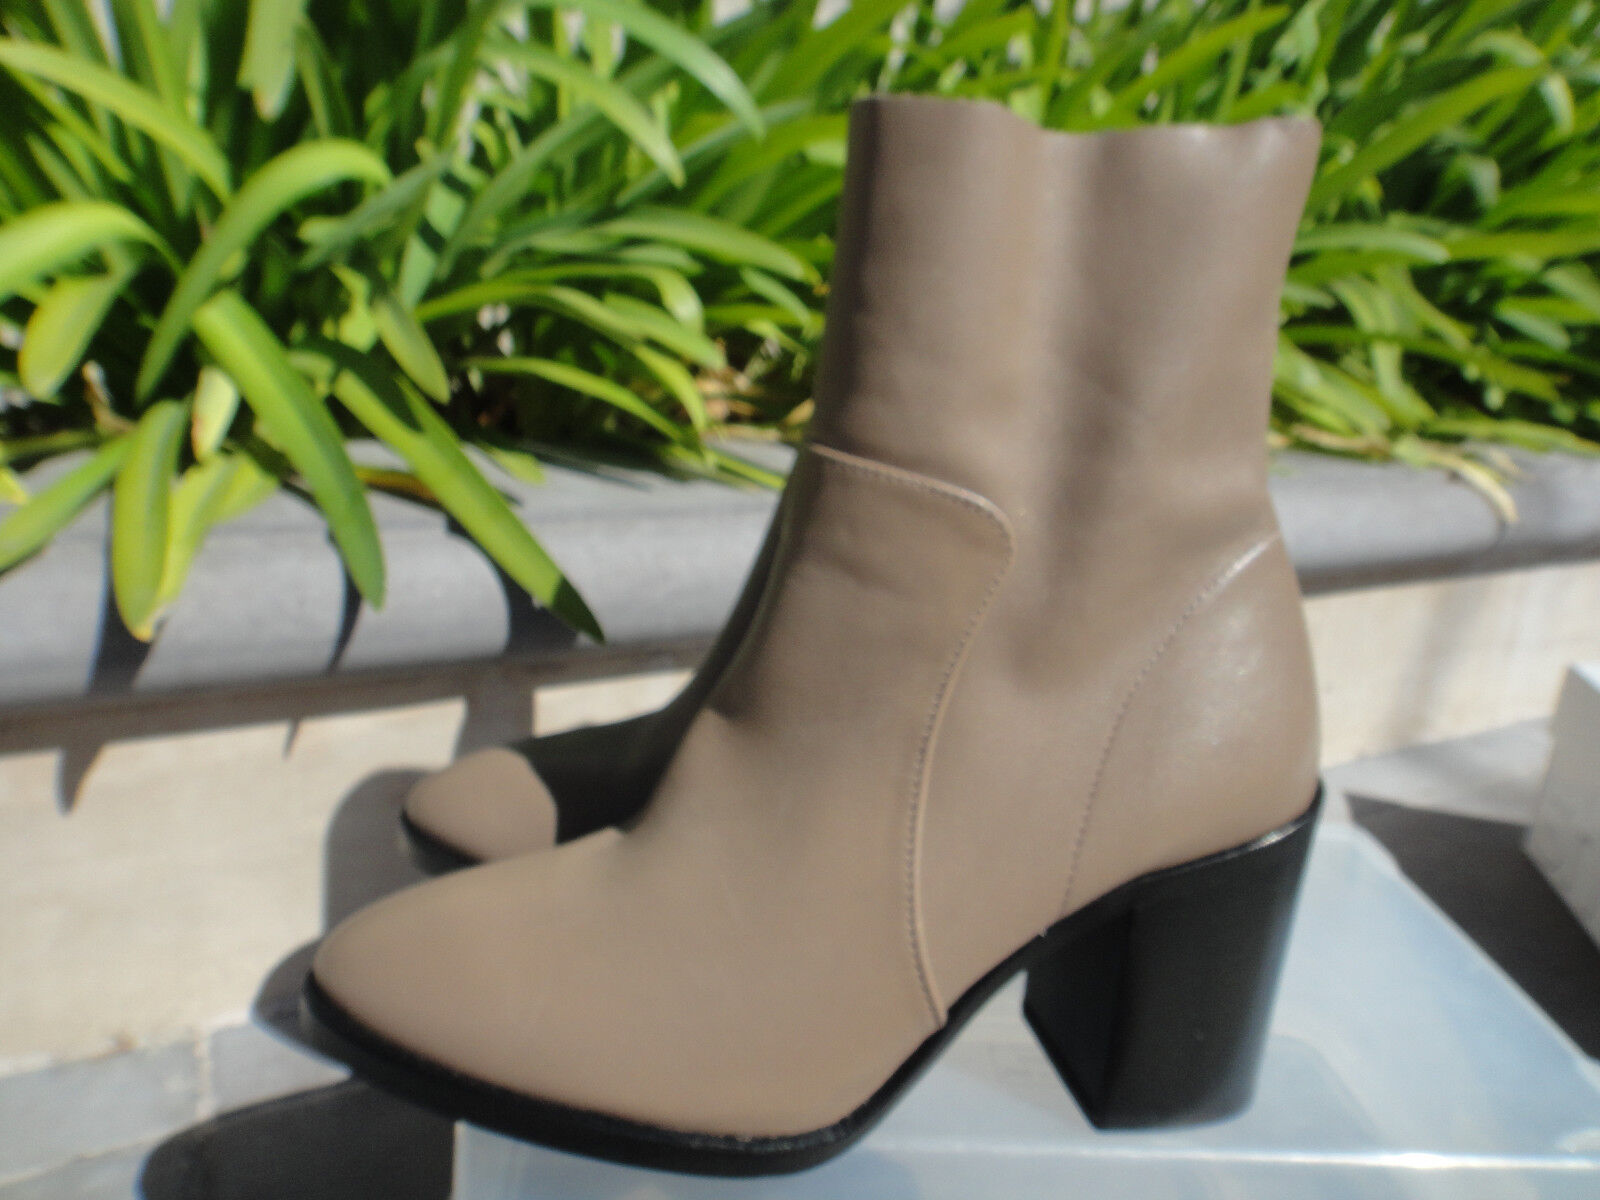 Topshop MILLION SOCK Leather Ankle Boots Pointy Toe Taupe, US Sz 6.5, EU38  150